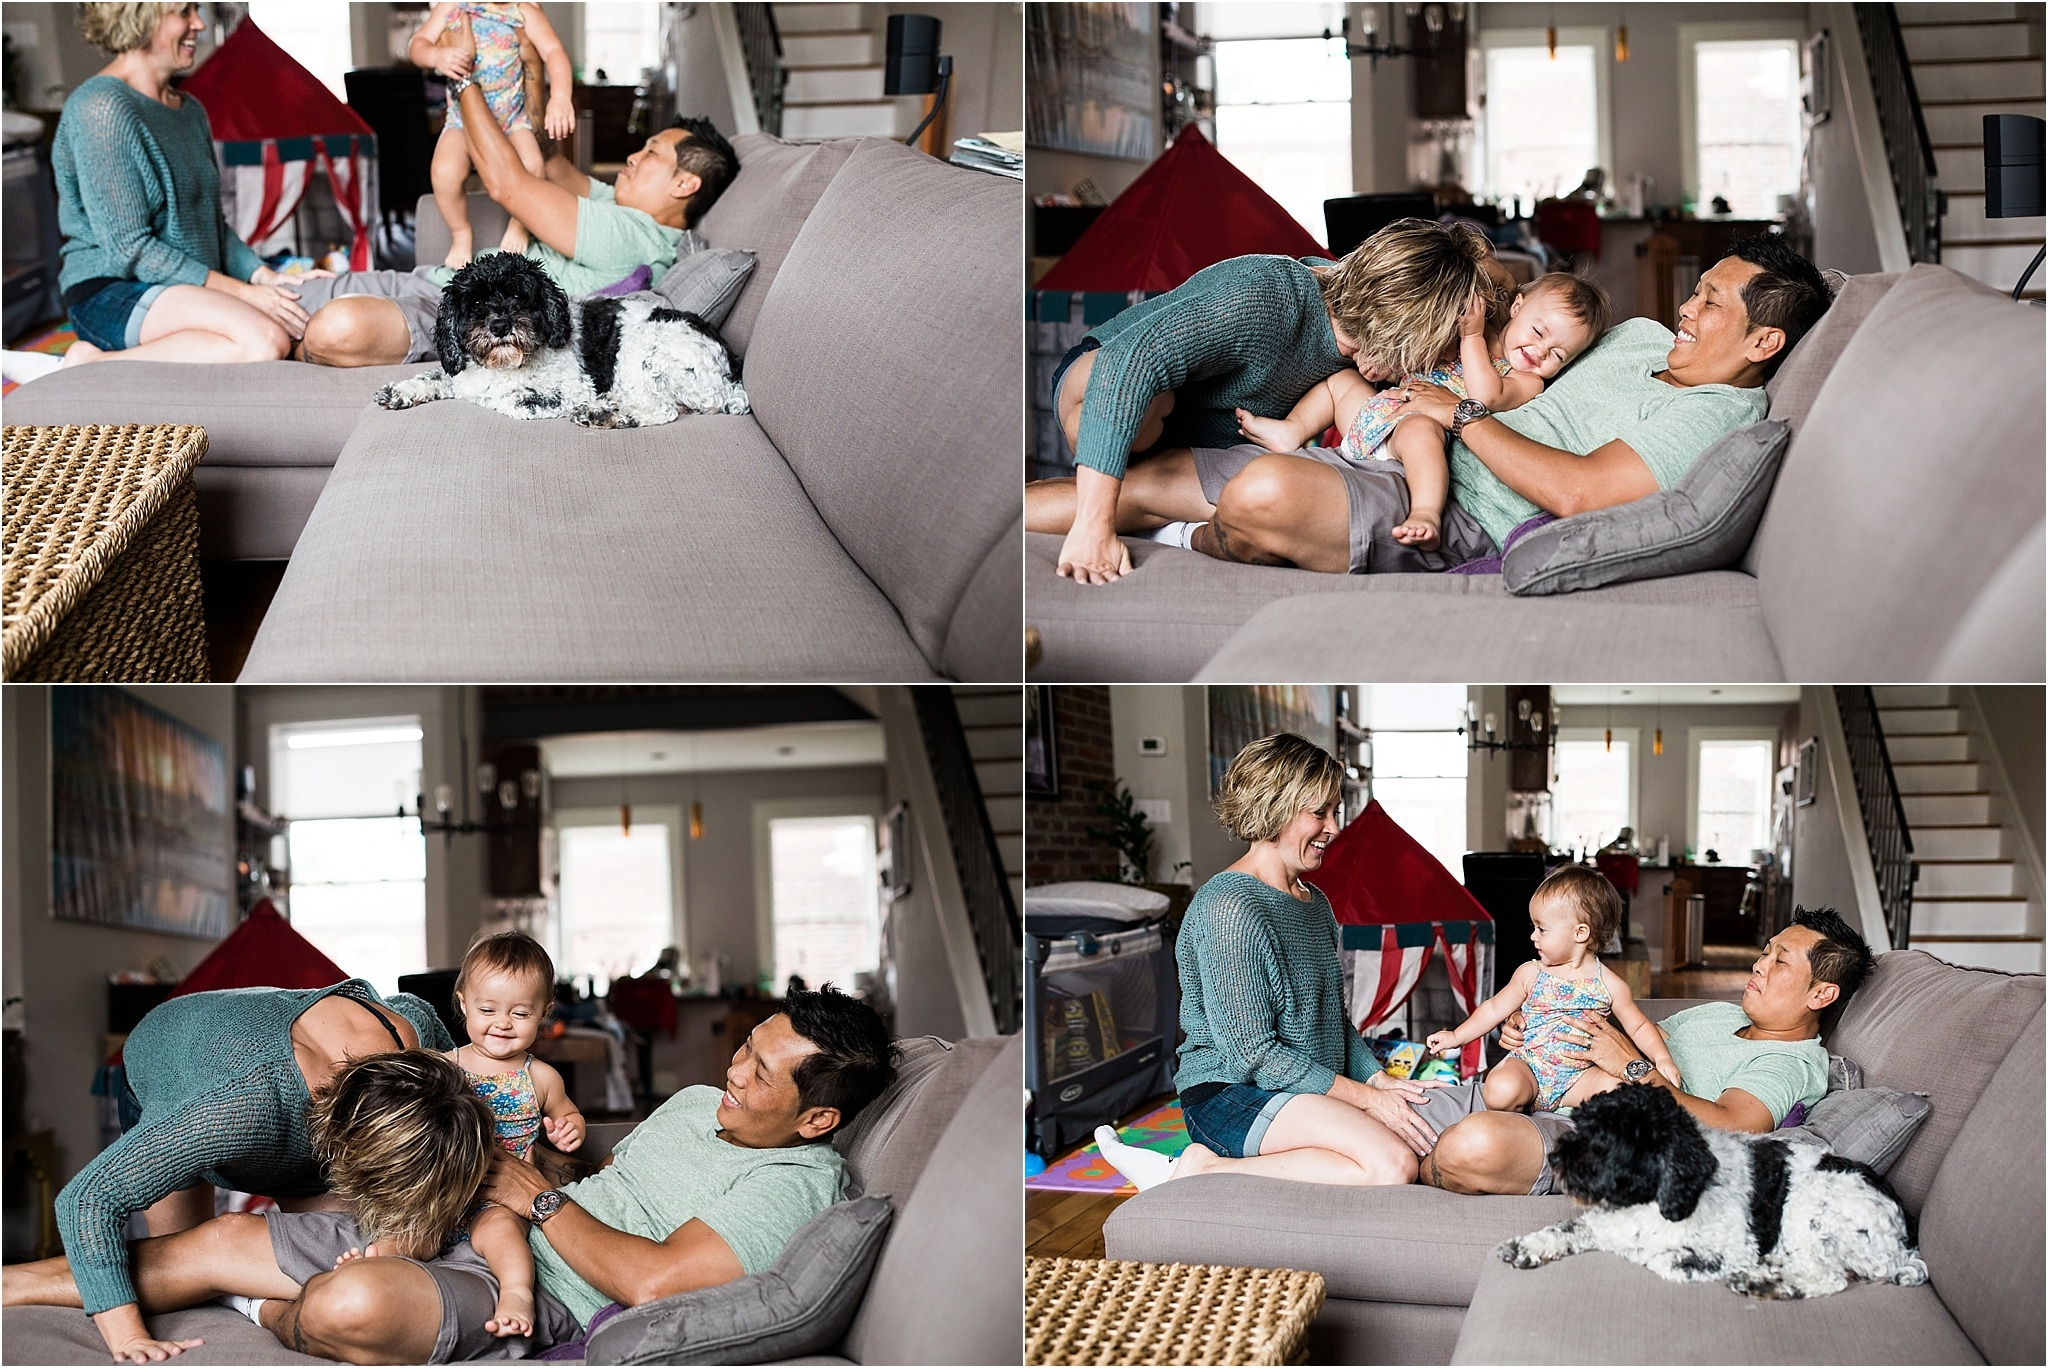 family snuggling and tickling on couch